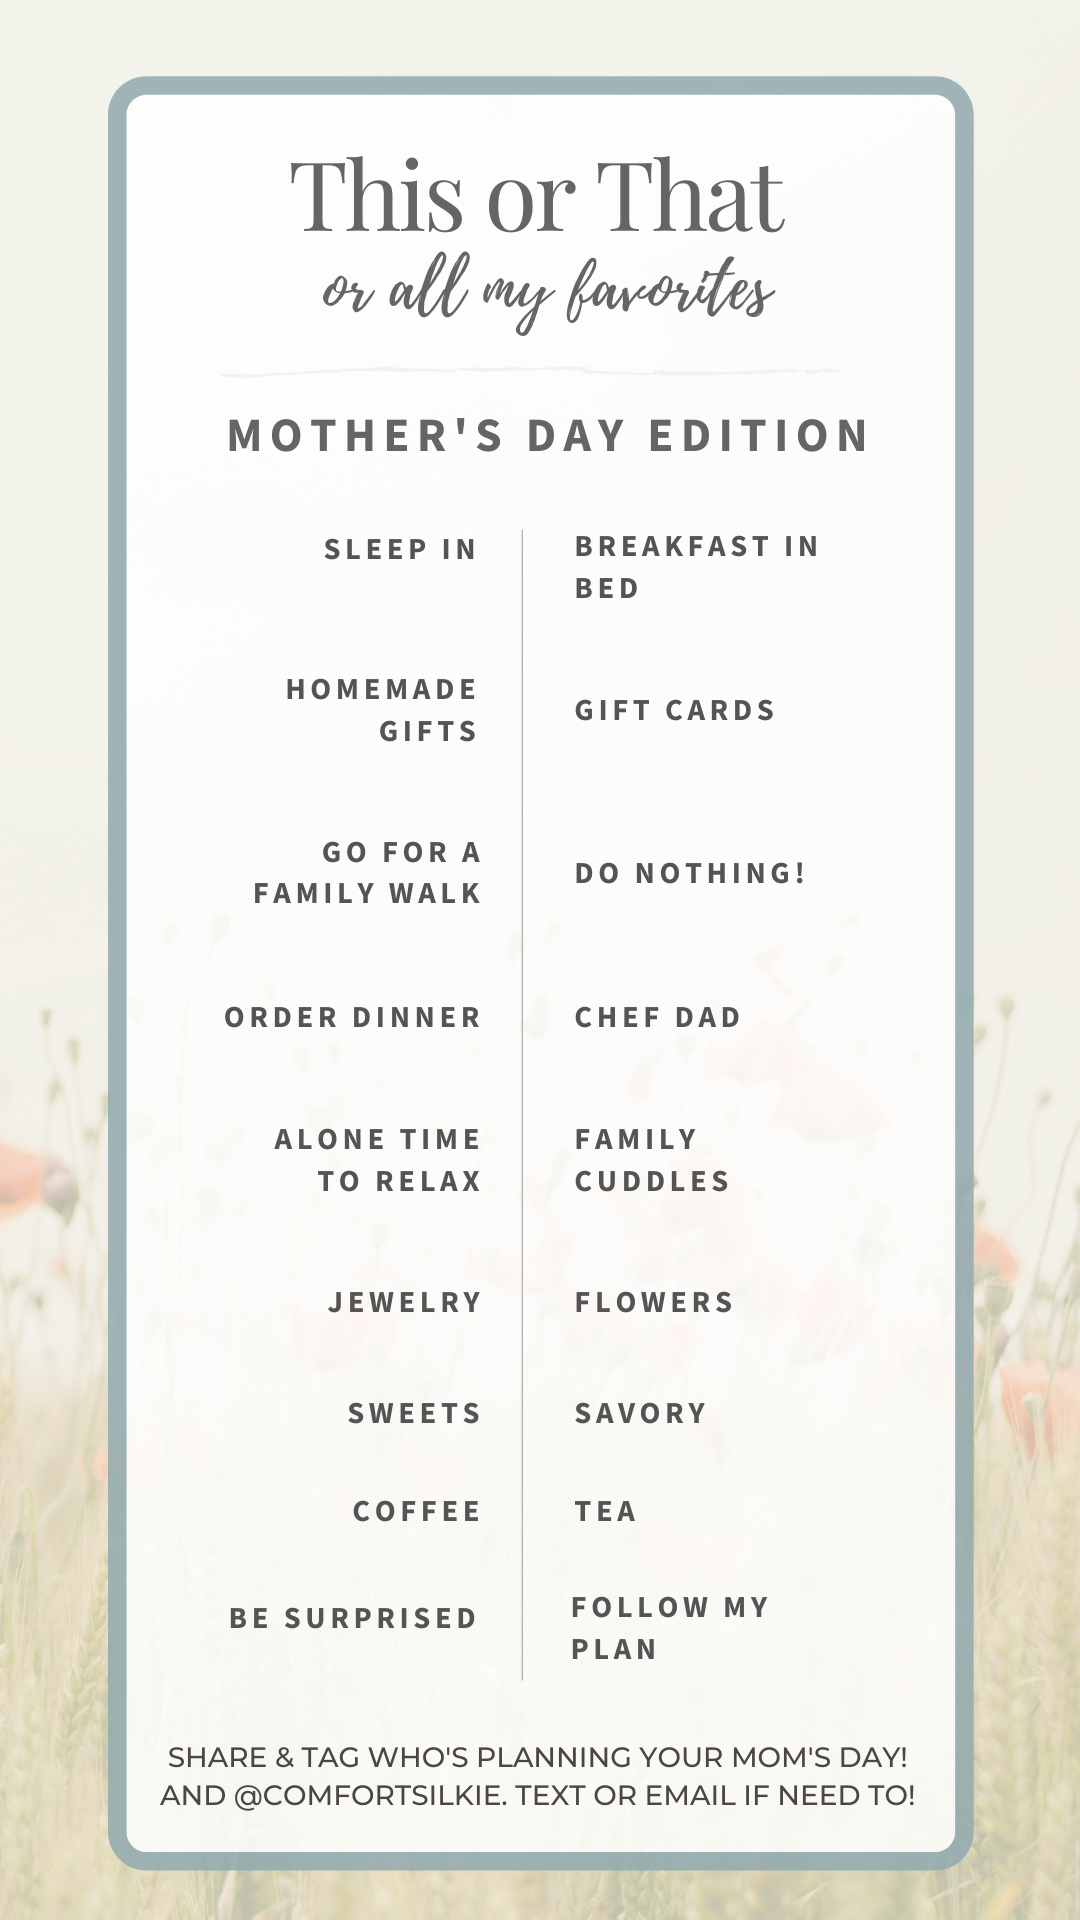 Mom's Day This or That